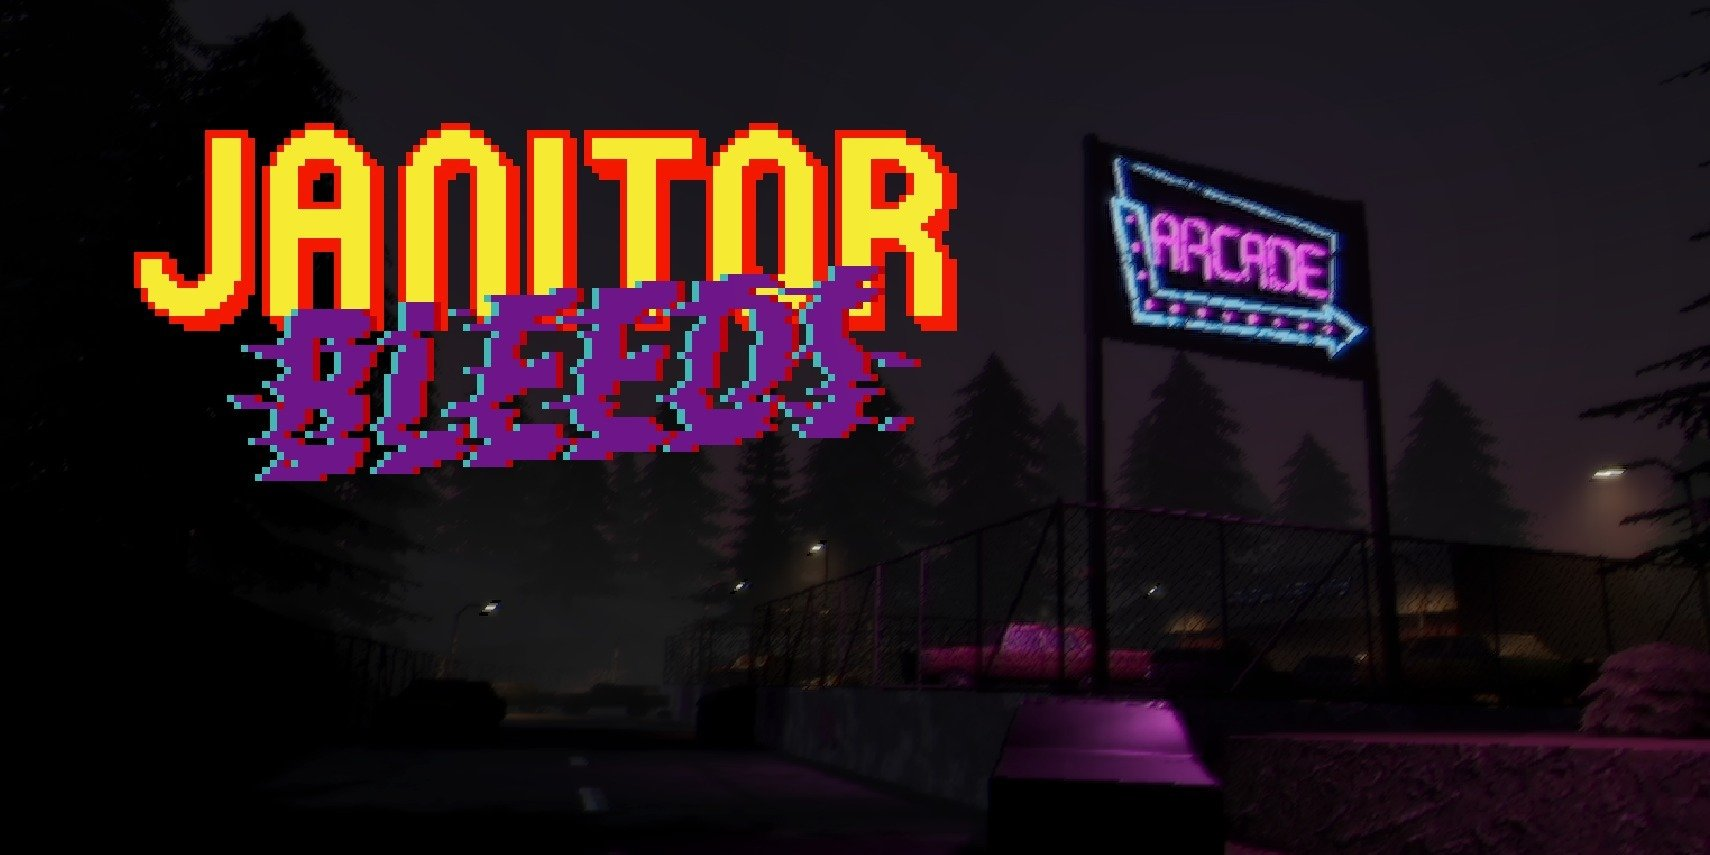 Old-school survival horror game JANITOR BLEEDS confirmed for release in 2022 on PC, Nintendo Switch, Xbox, and PlayStation